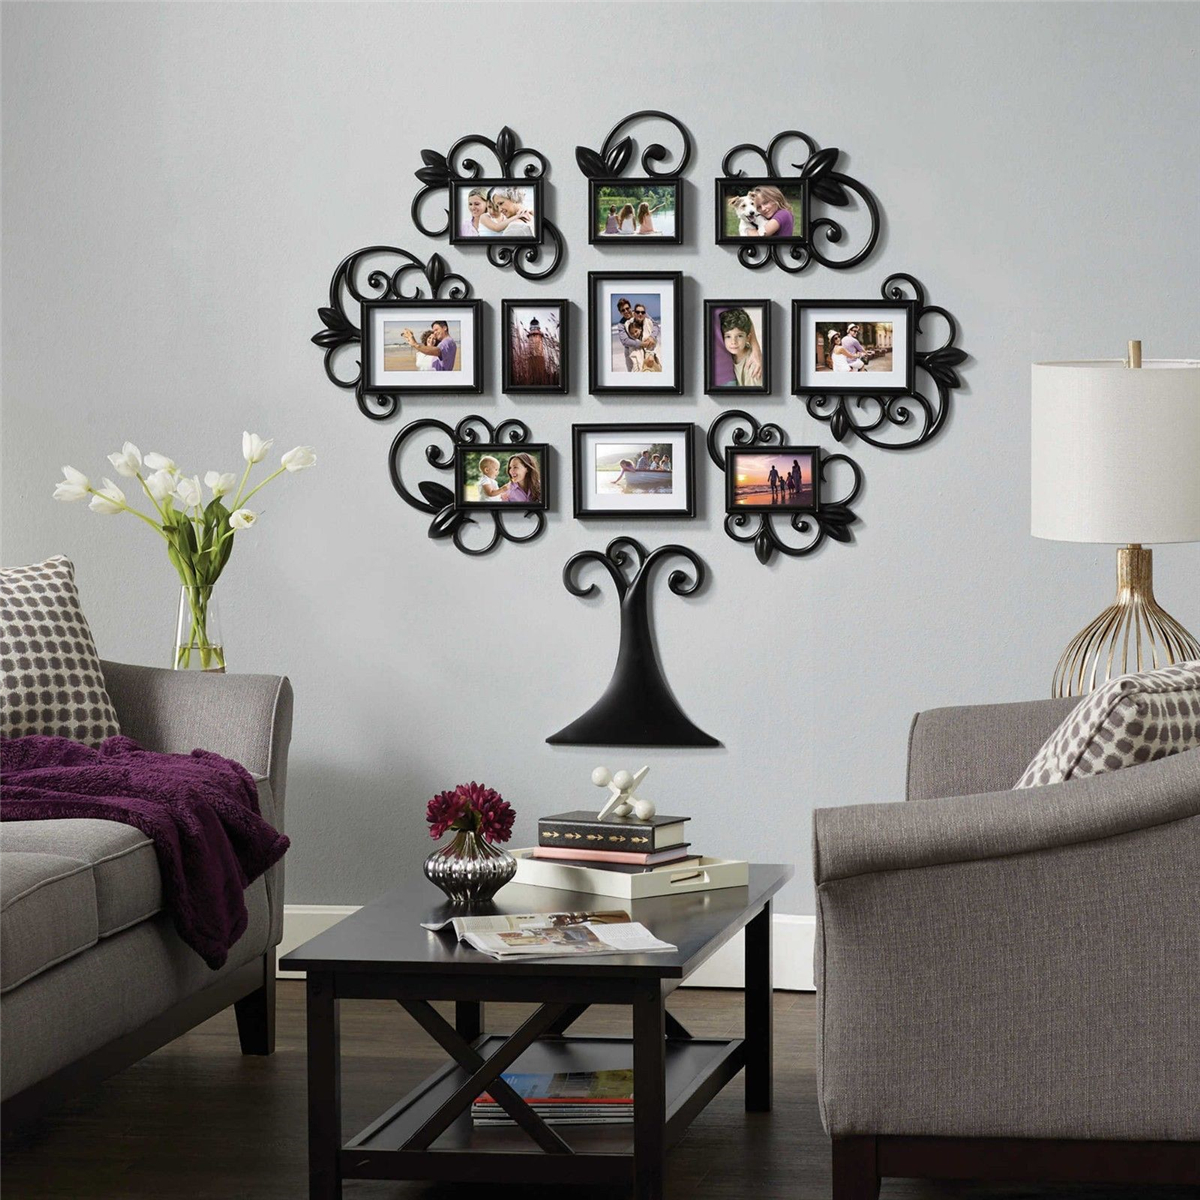 12pcs Family Tree Photo Picture Frame Collage Wall Art Home Xmas